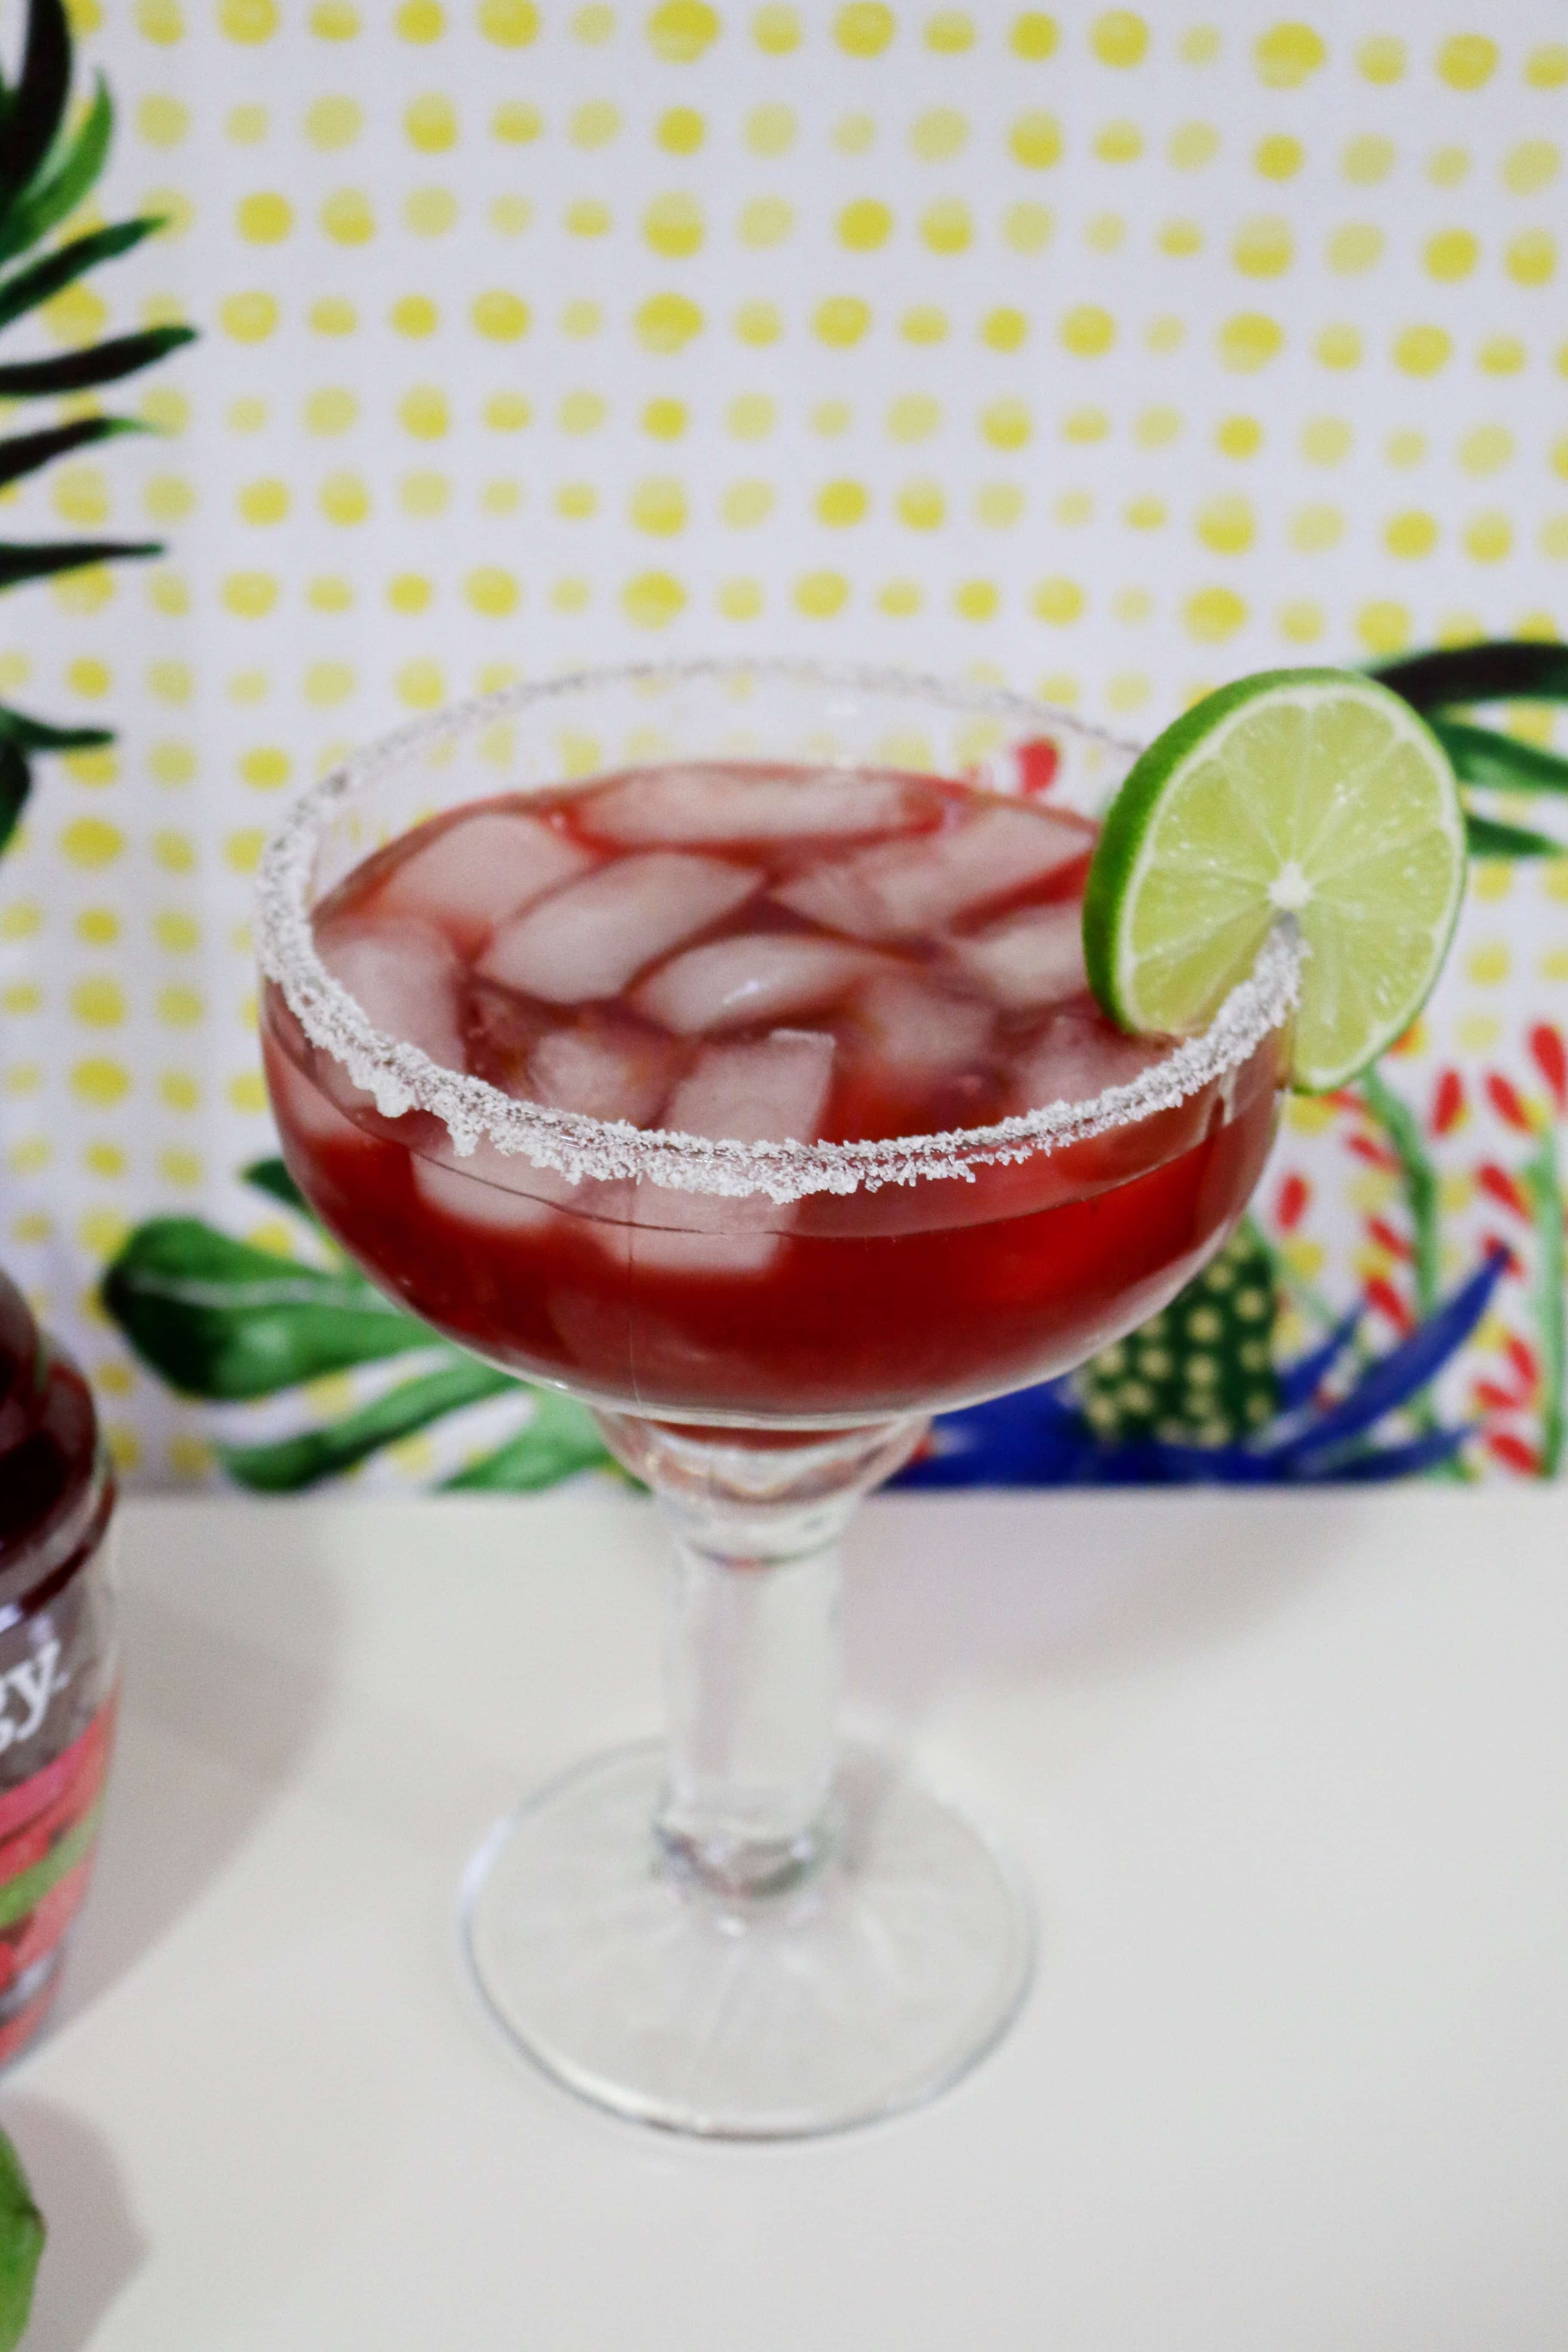 Berry-Beet-a-rita a delicious Beet margarita - Jenny The Voice